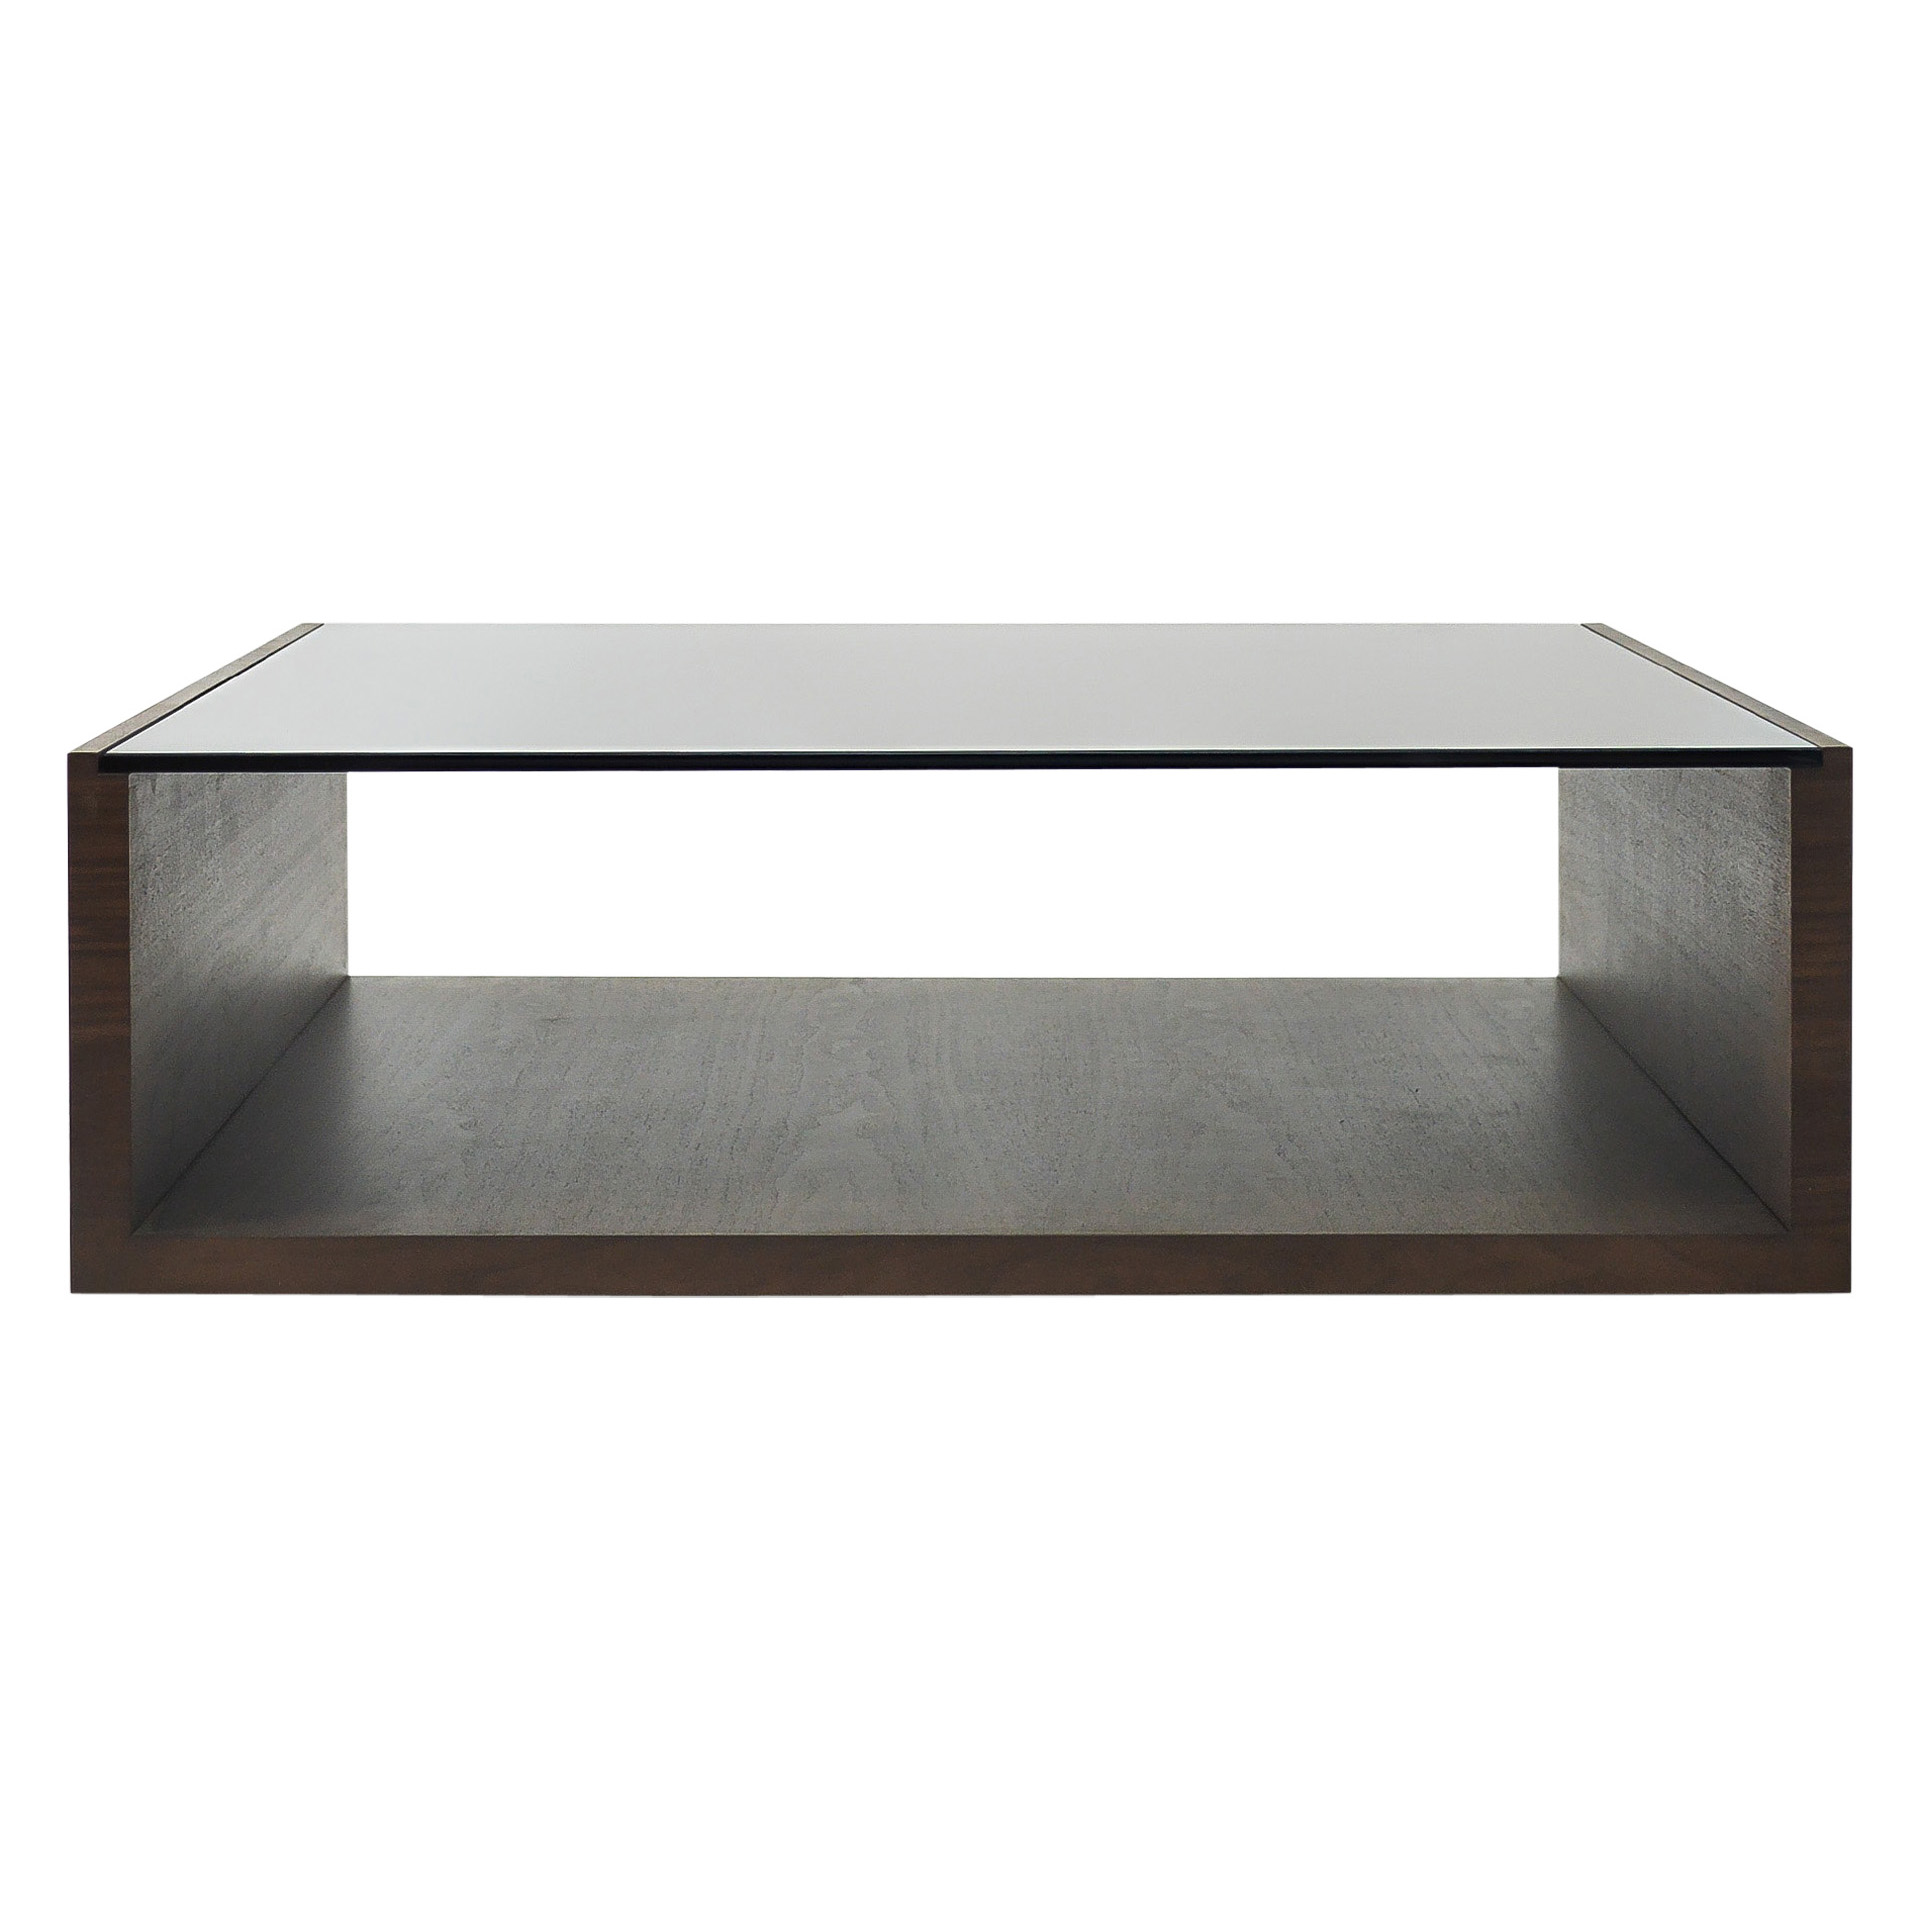 Zoom image Modern Coffee Table With Walnut Veneer And Smoke Glass  Contemporary, Glass, Wood, Center